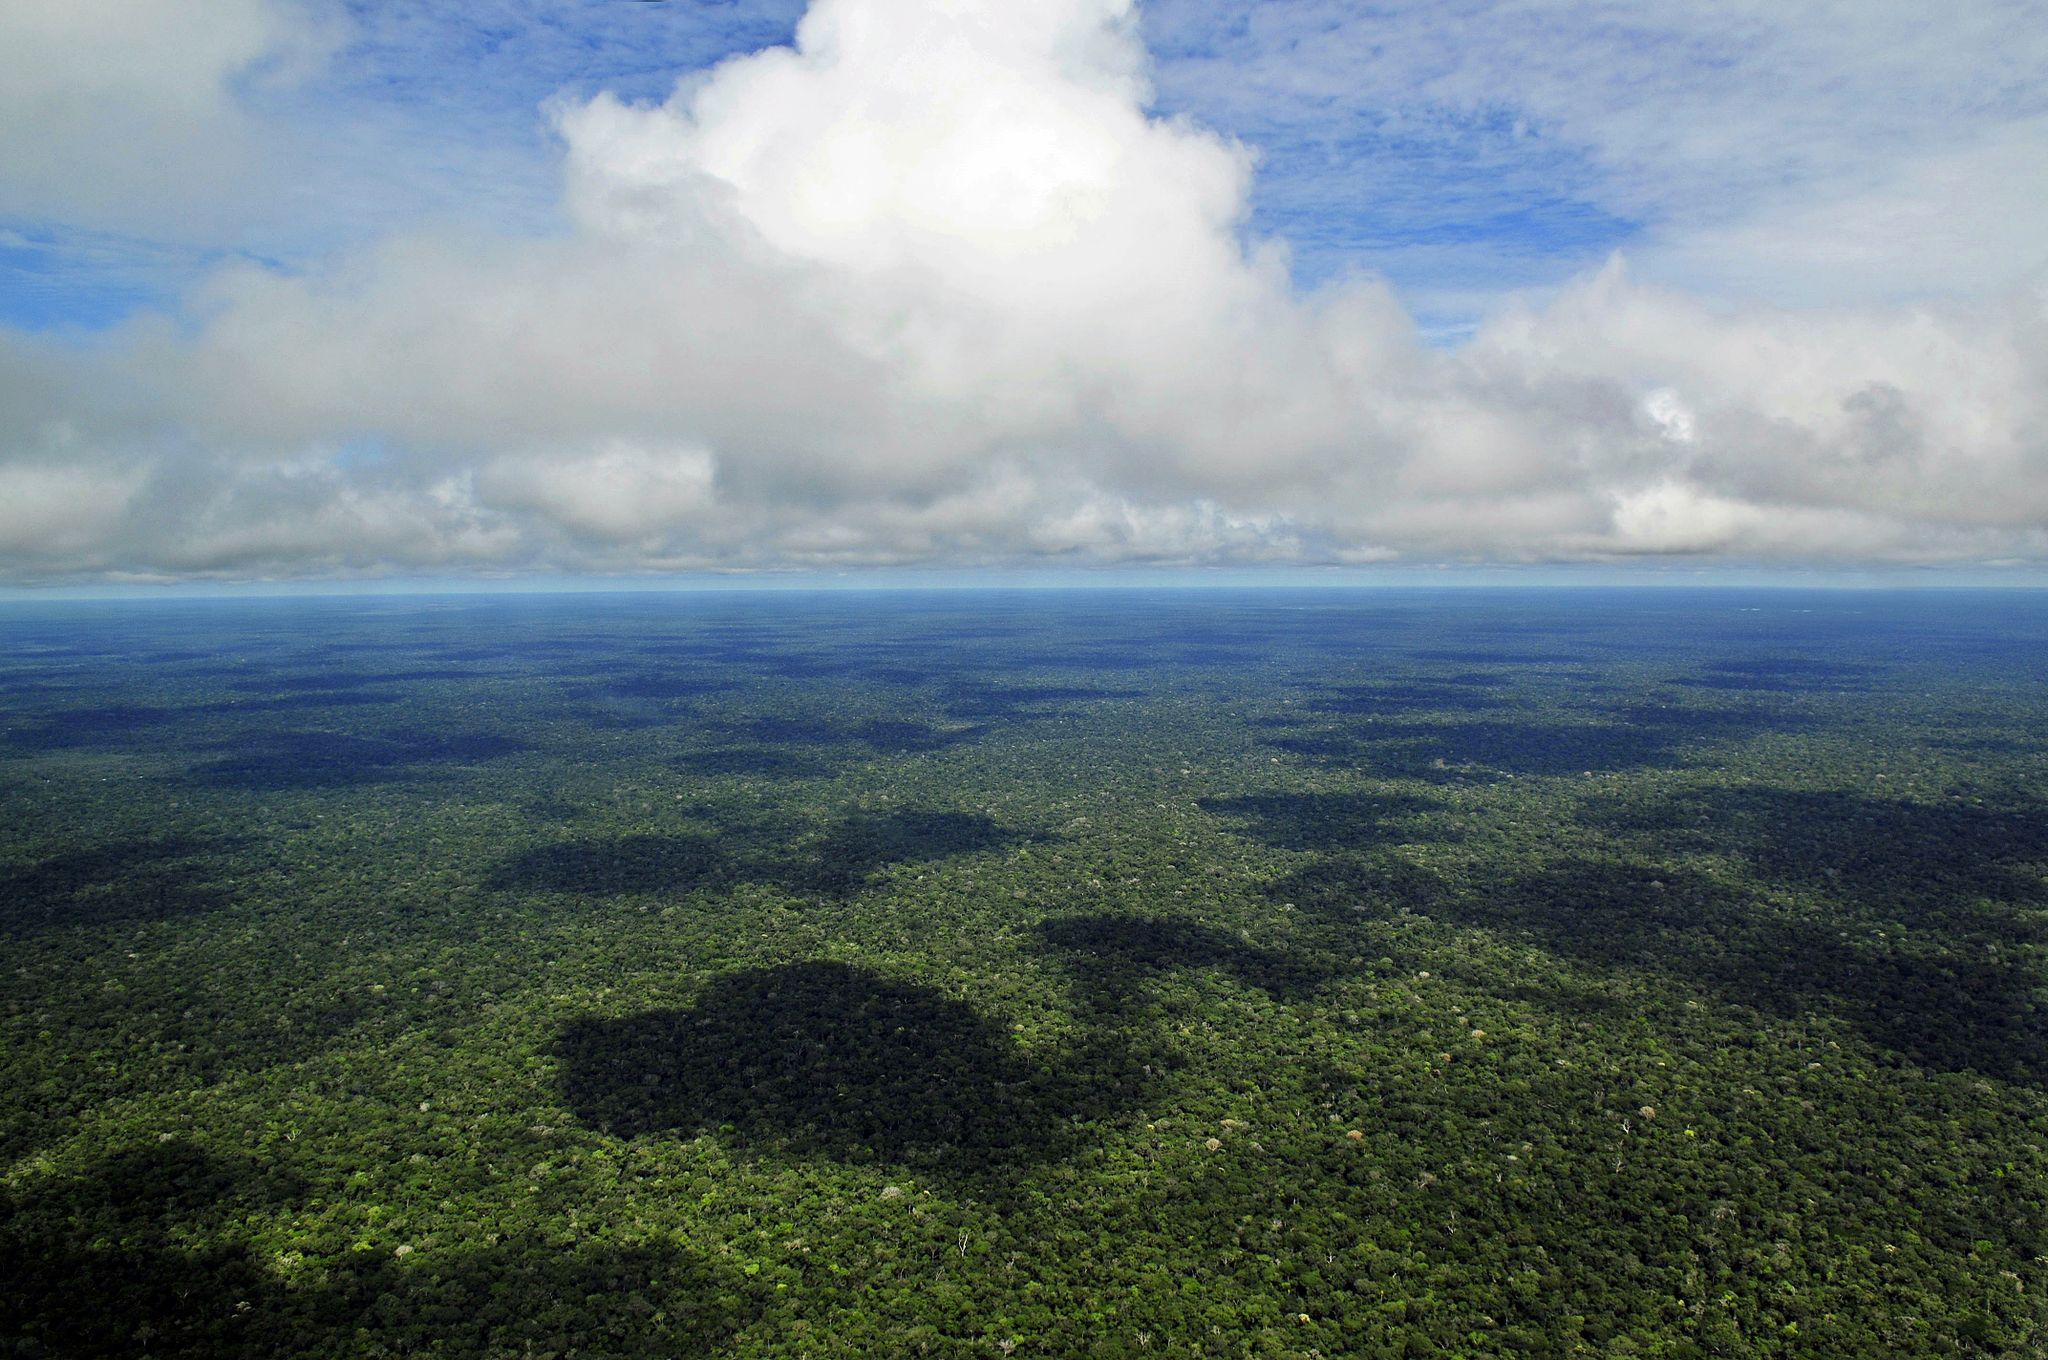 The Amazon Rainforest covers an area of 6,7 million km2 and 9 countries